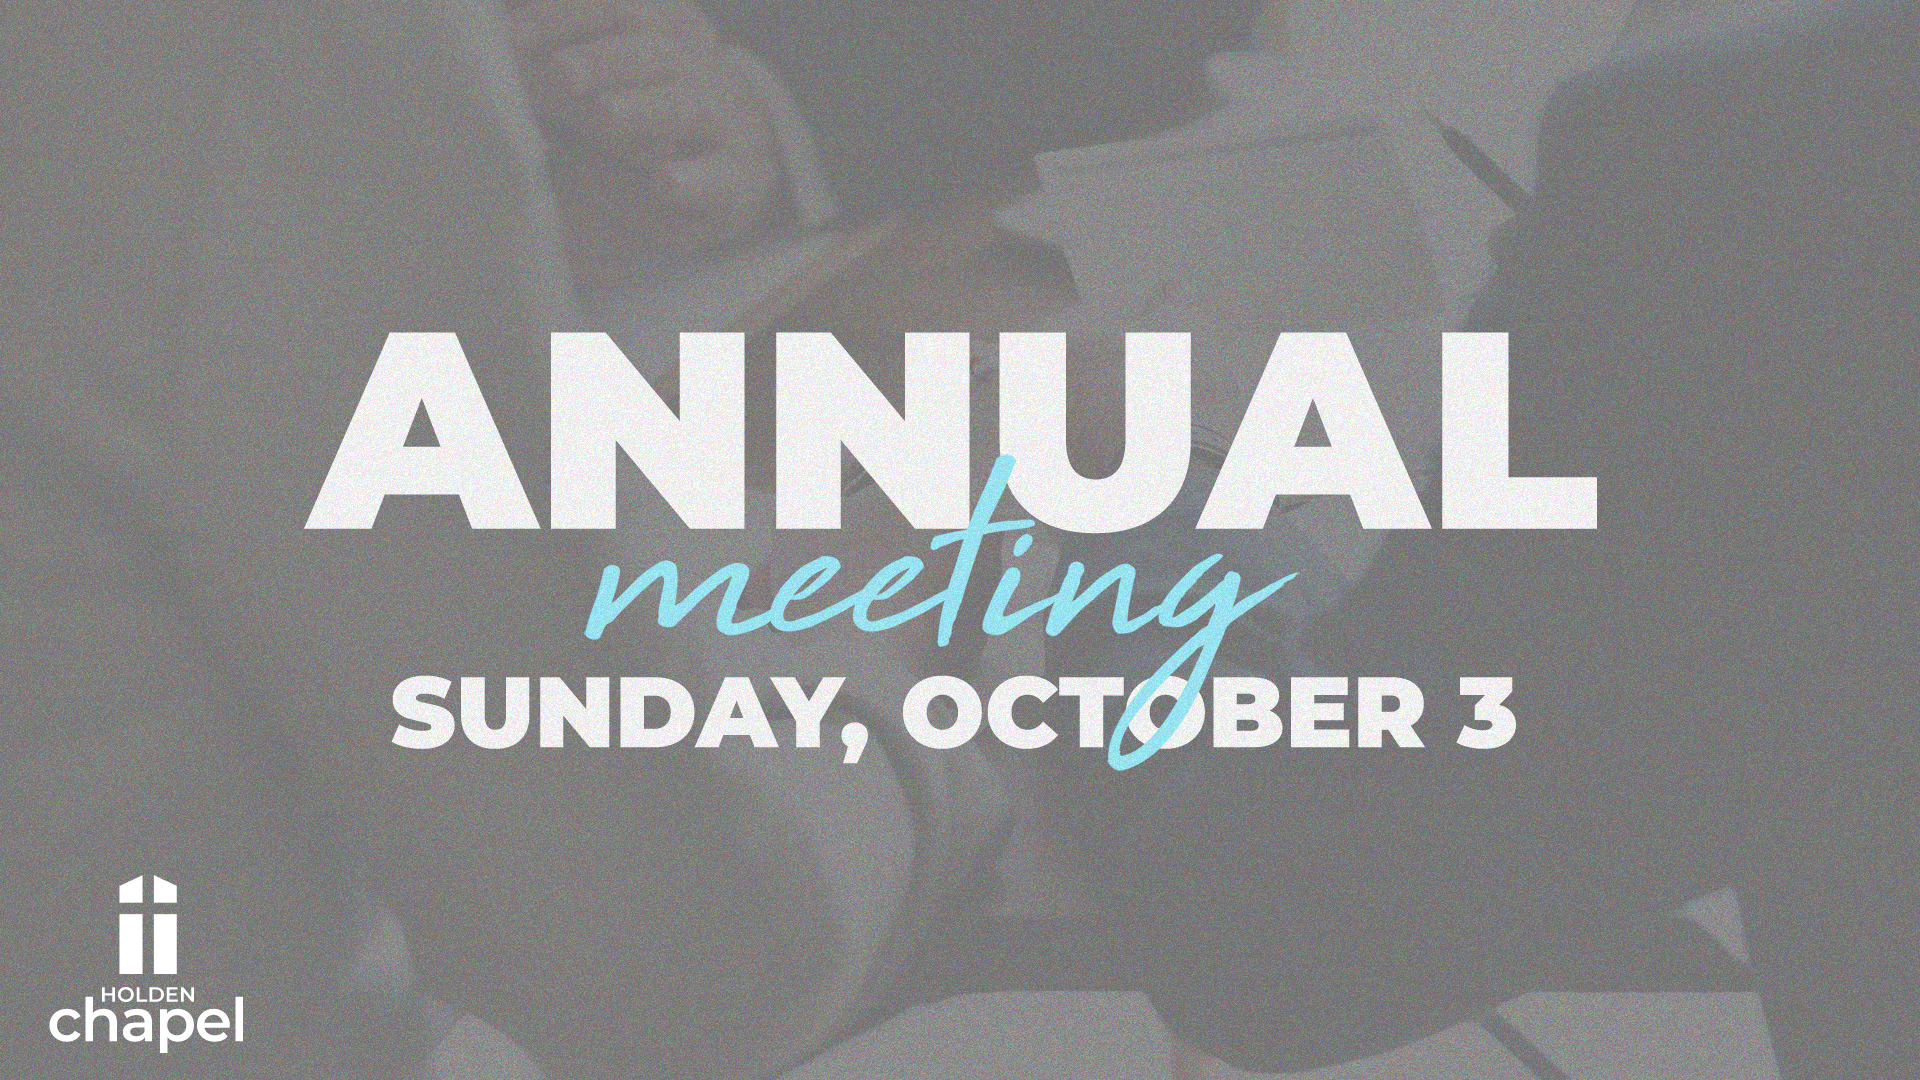 annual meeting image